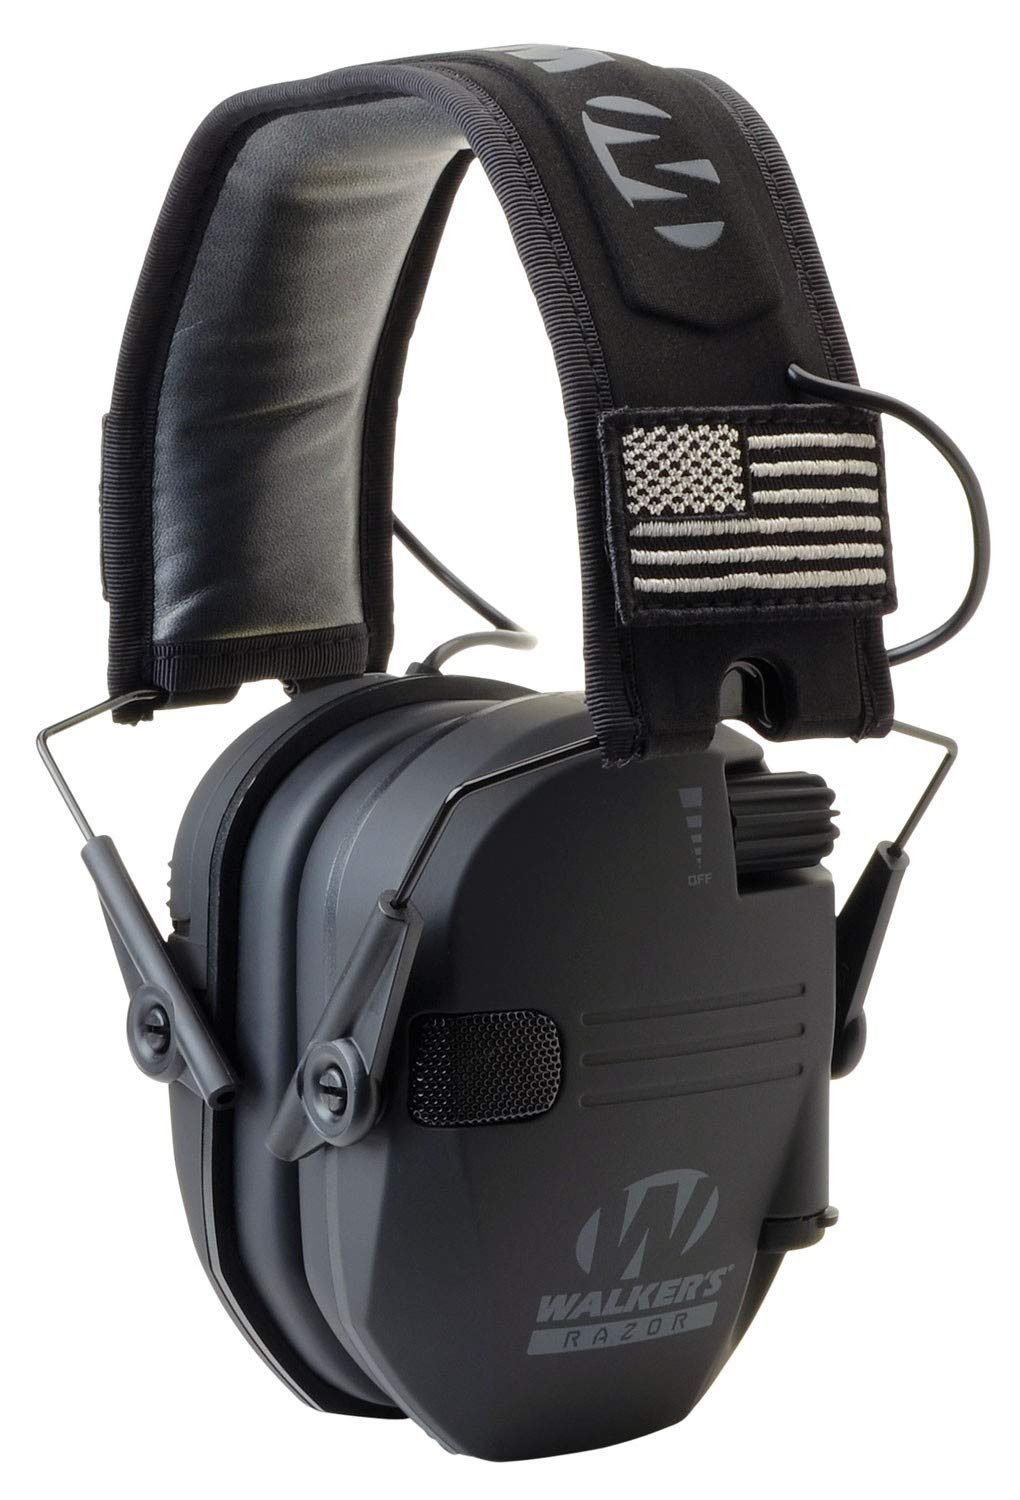 Walkers Razor Slim Electronic Hearing Protection Muffs with Sound Amplification and Suppression and Shooting Glasses Kit, Black Patriot by Walkers (Image #3)